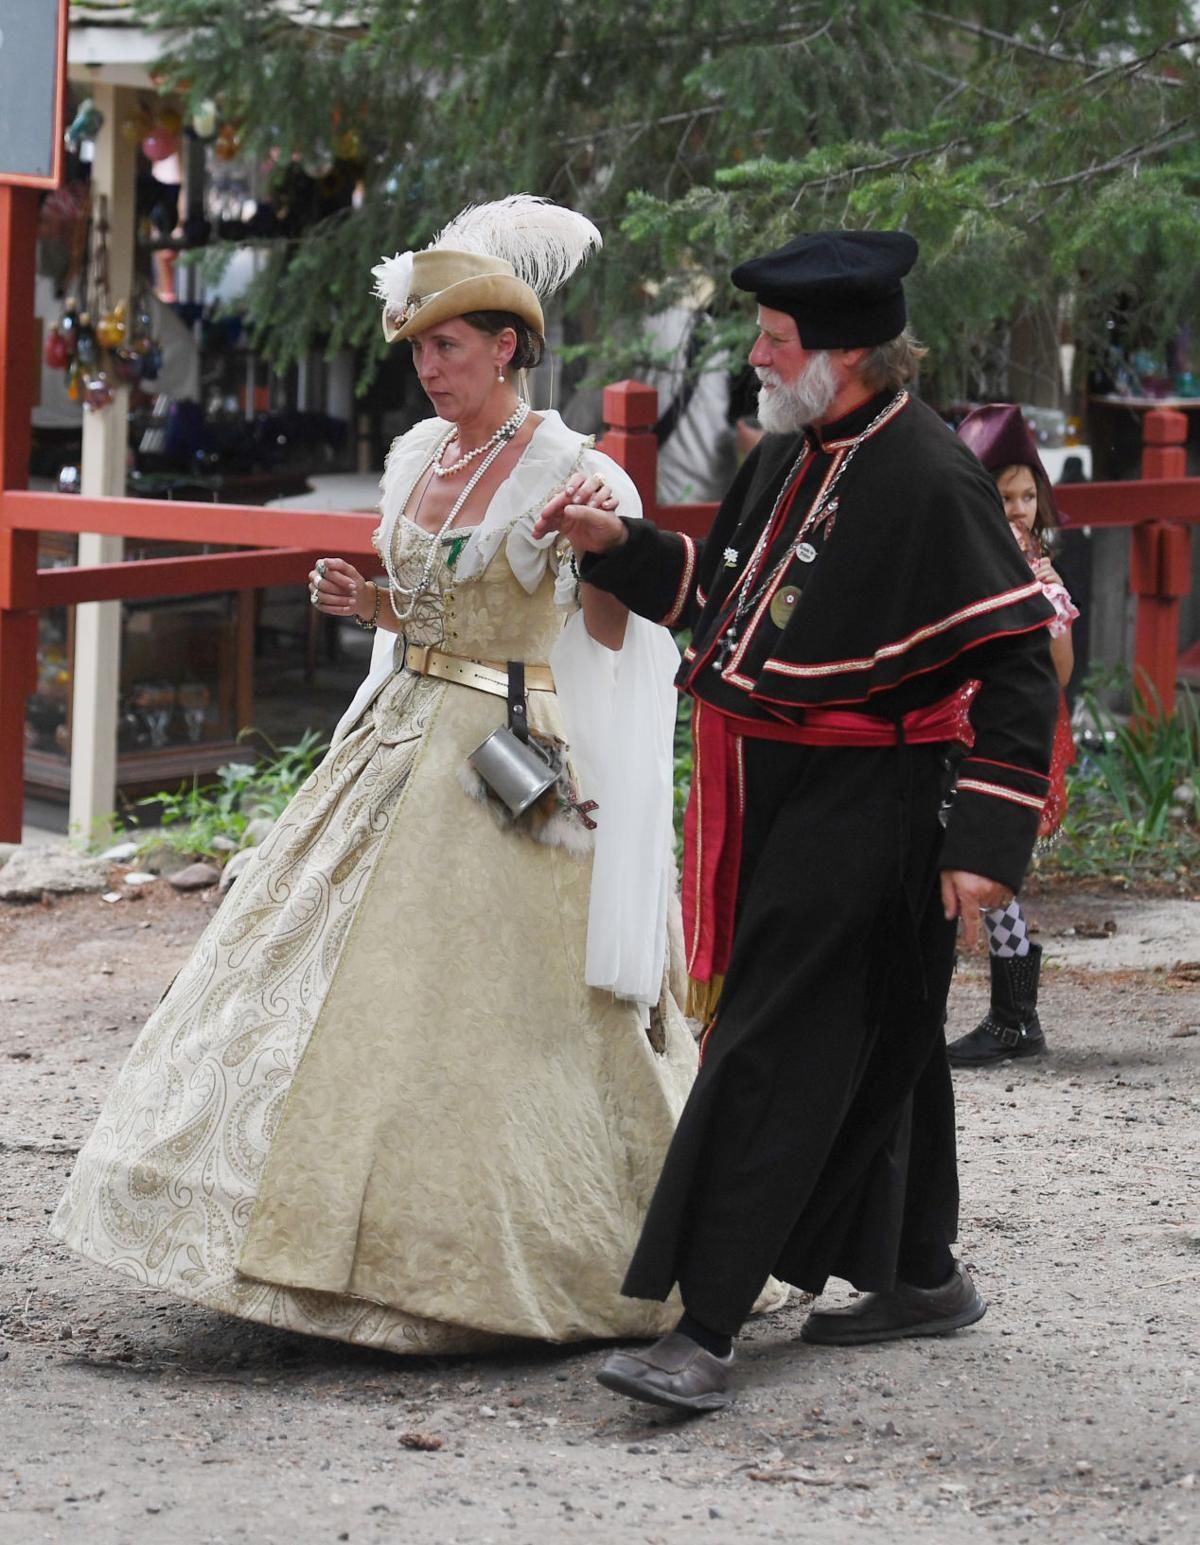 Colorado Renaissance Fest draws thousands to Larkspur for medieval amusement